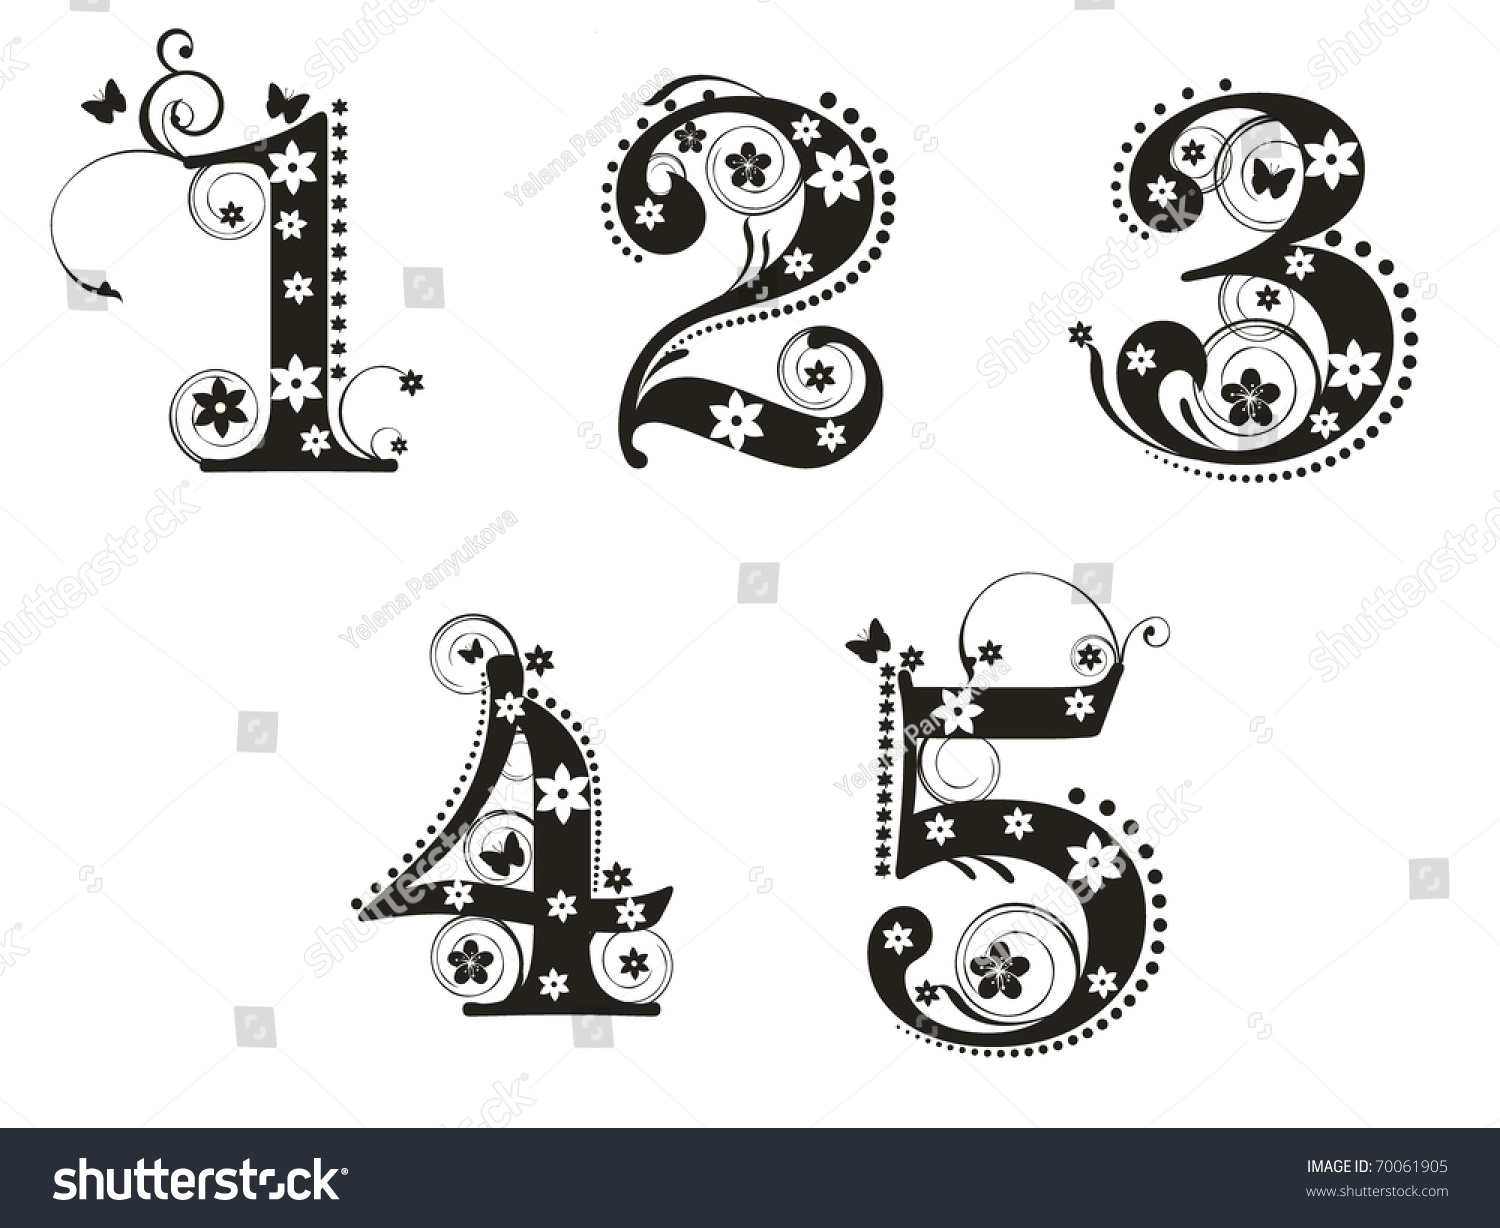 Decorative number flowers design stock vector 70061905 for Blueprint number